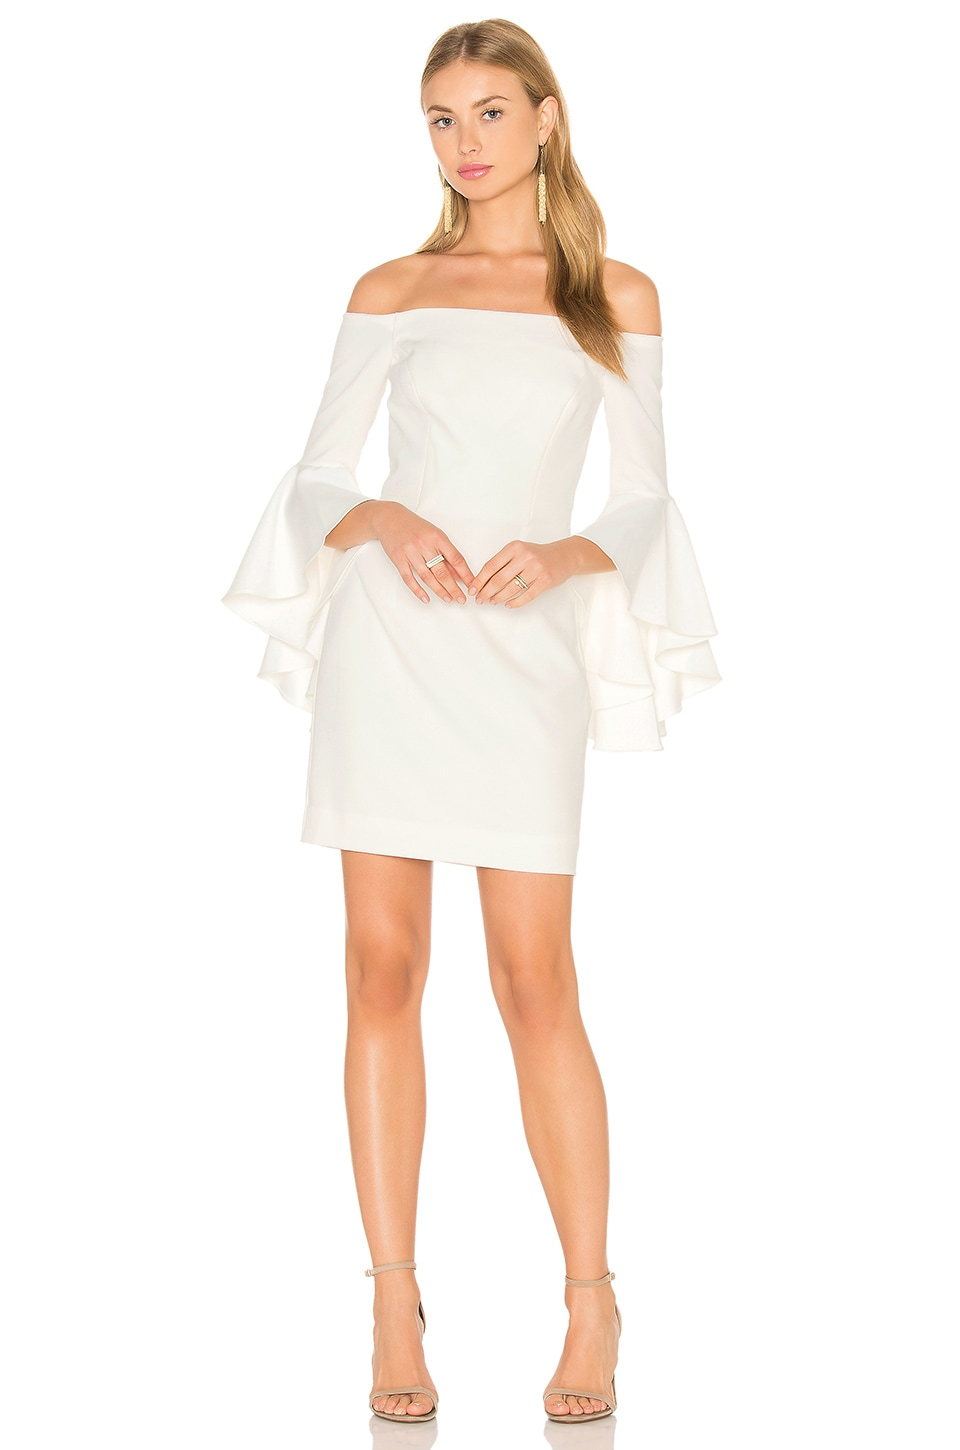 MILLY Cady Selena Mini Dress in White | REVOLVE